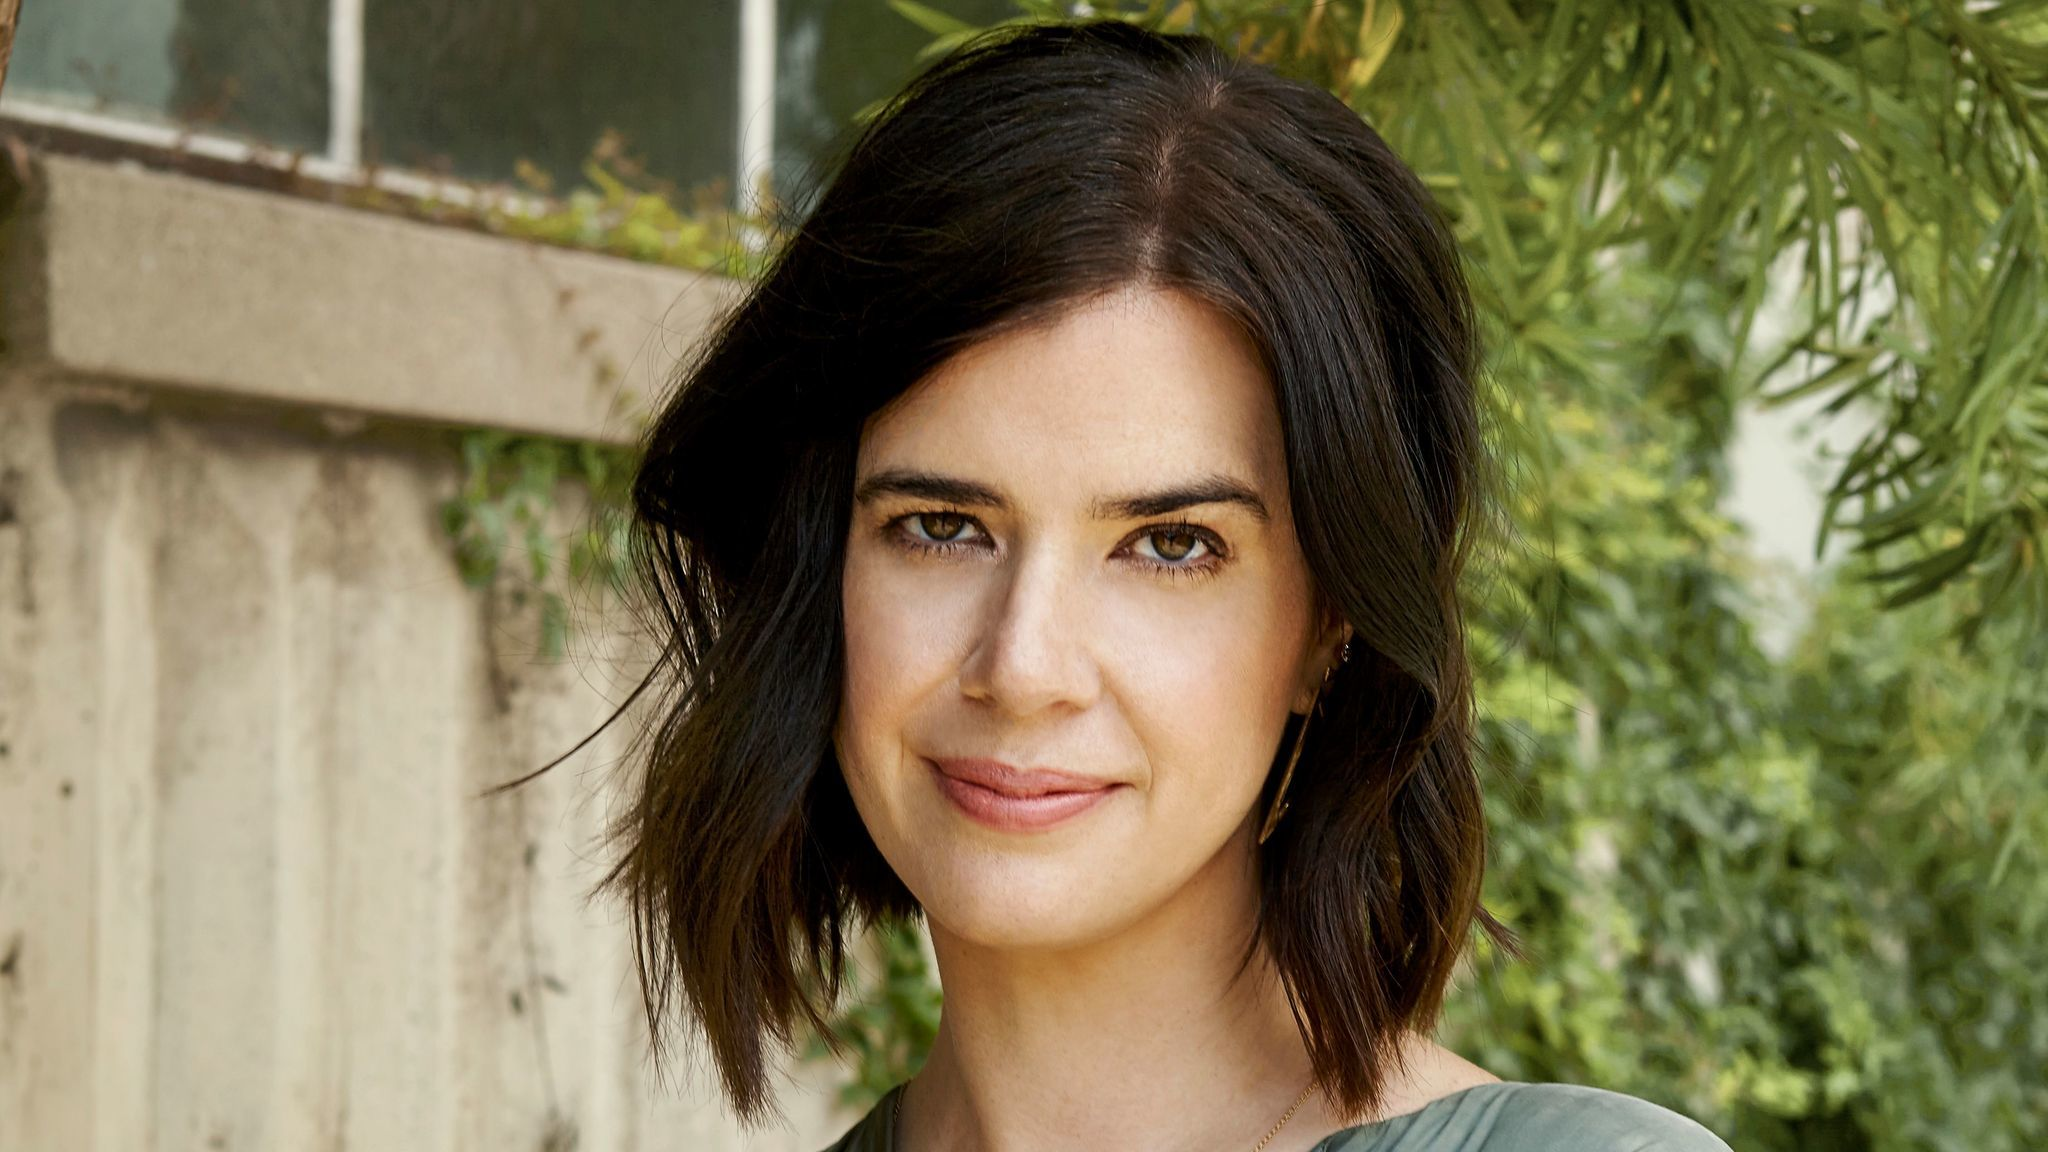 Sallie Patrick is the co-creator and showrunner of the CW's reboot of